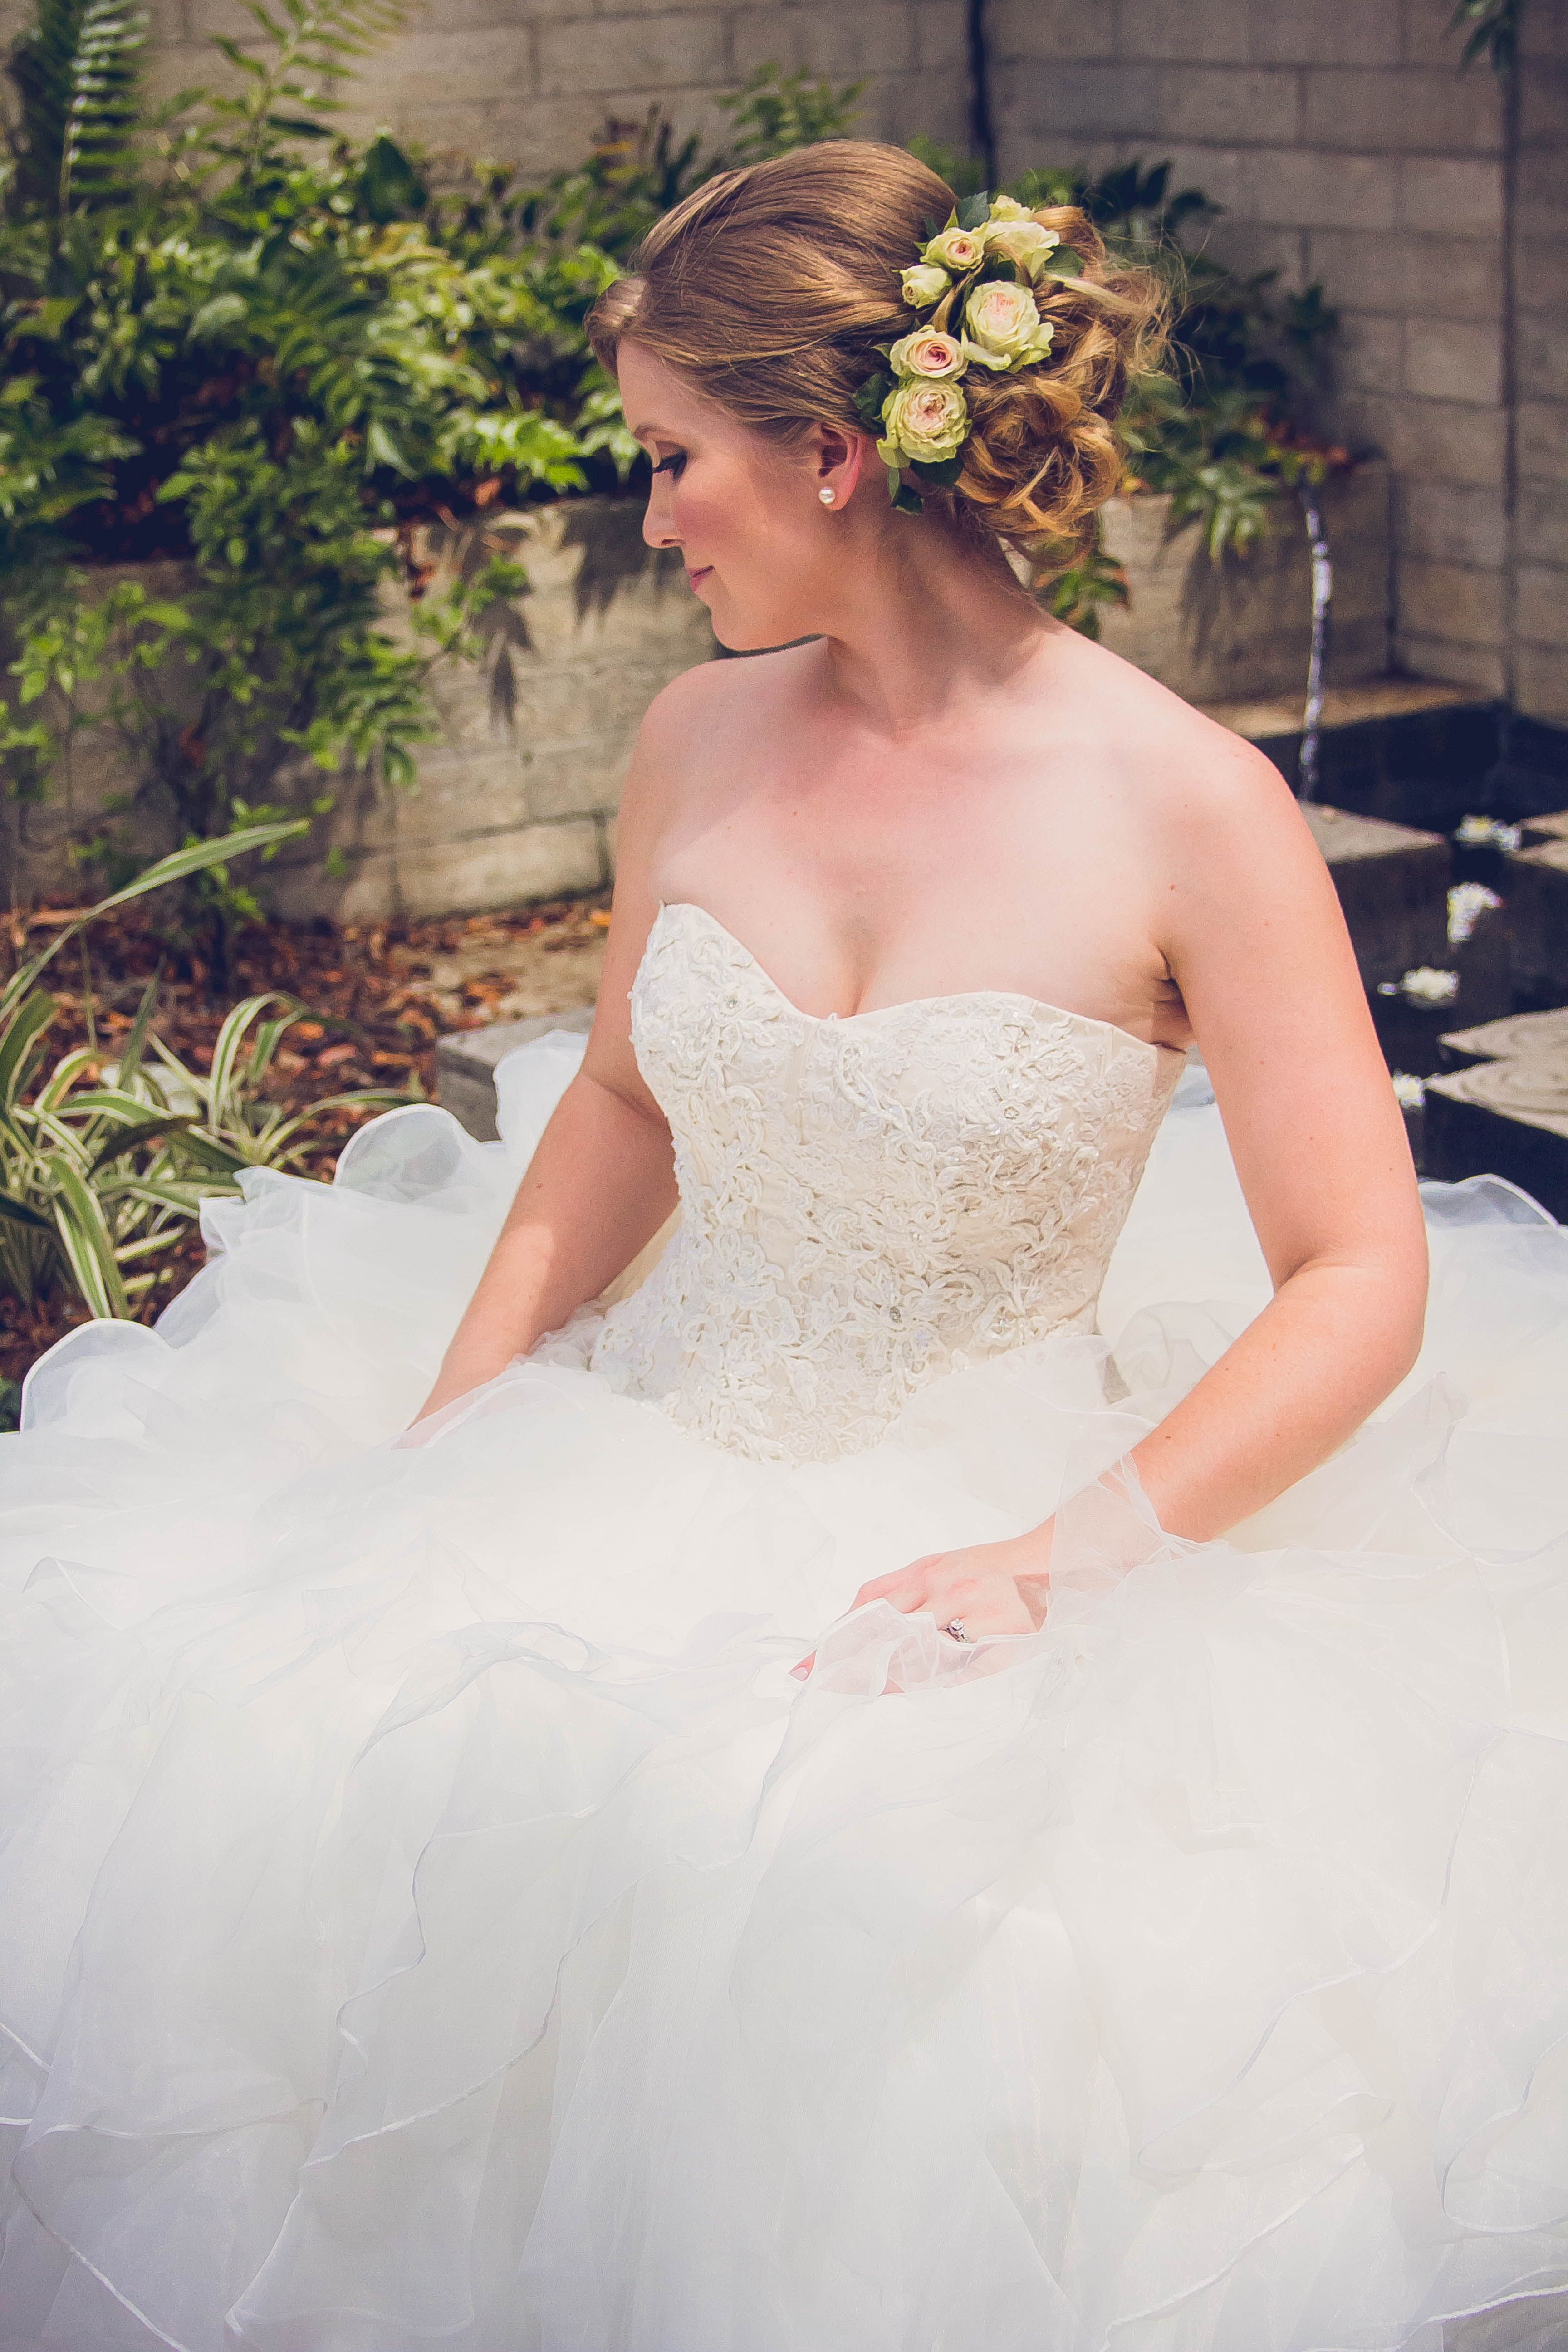 Updo With Rose Floral Accent Beautiful Wedding Hair Wedding Hairstyles Wedding Hair And Makeup